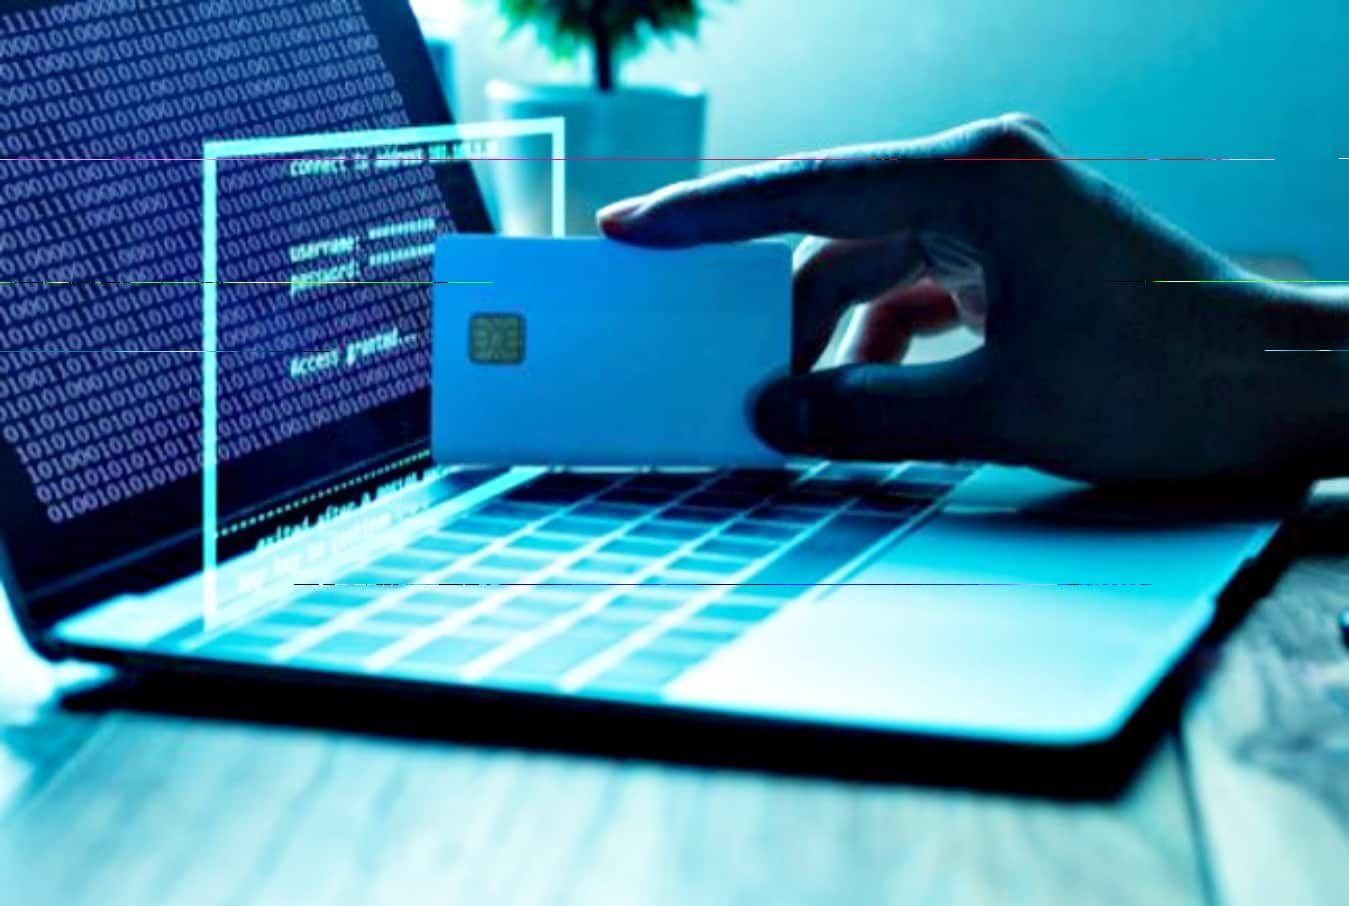 Hackers now use web skimmers to steal credit card data